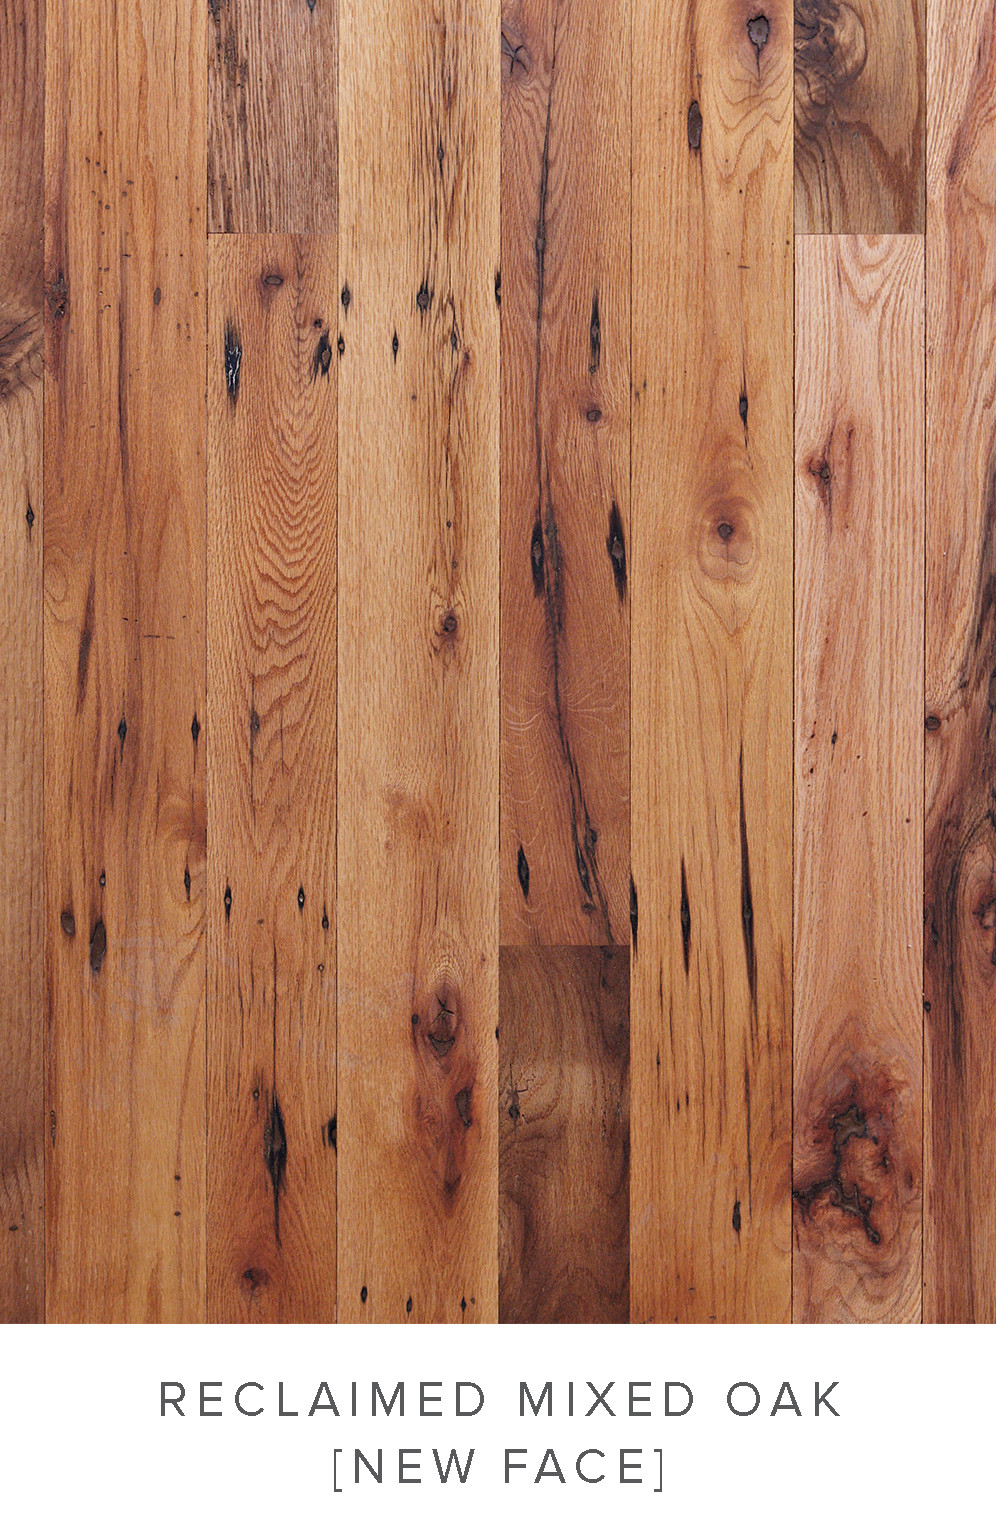 hardwood flooring distributors near me of extensive range of reclaimed wood flooring all under one roof at the with regard to reclaimed mixed oak new face